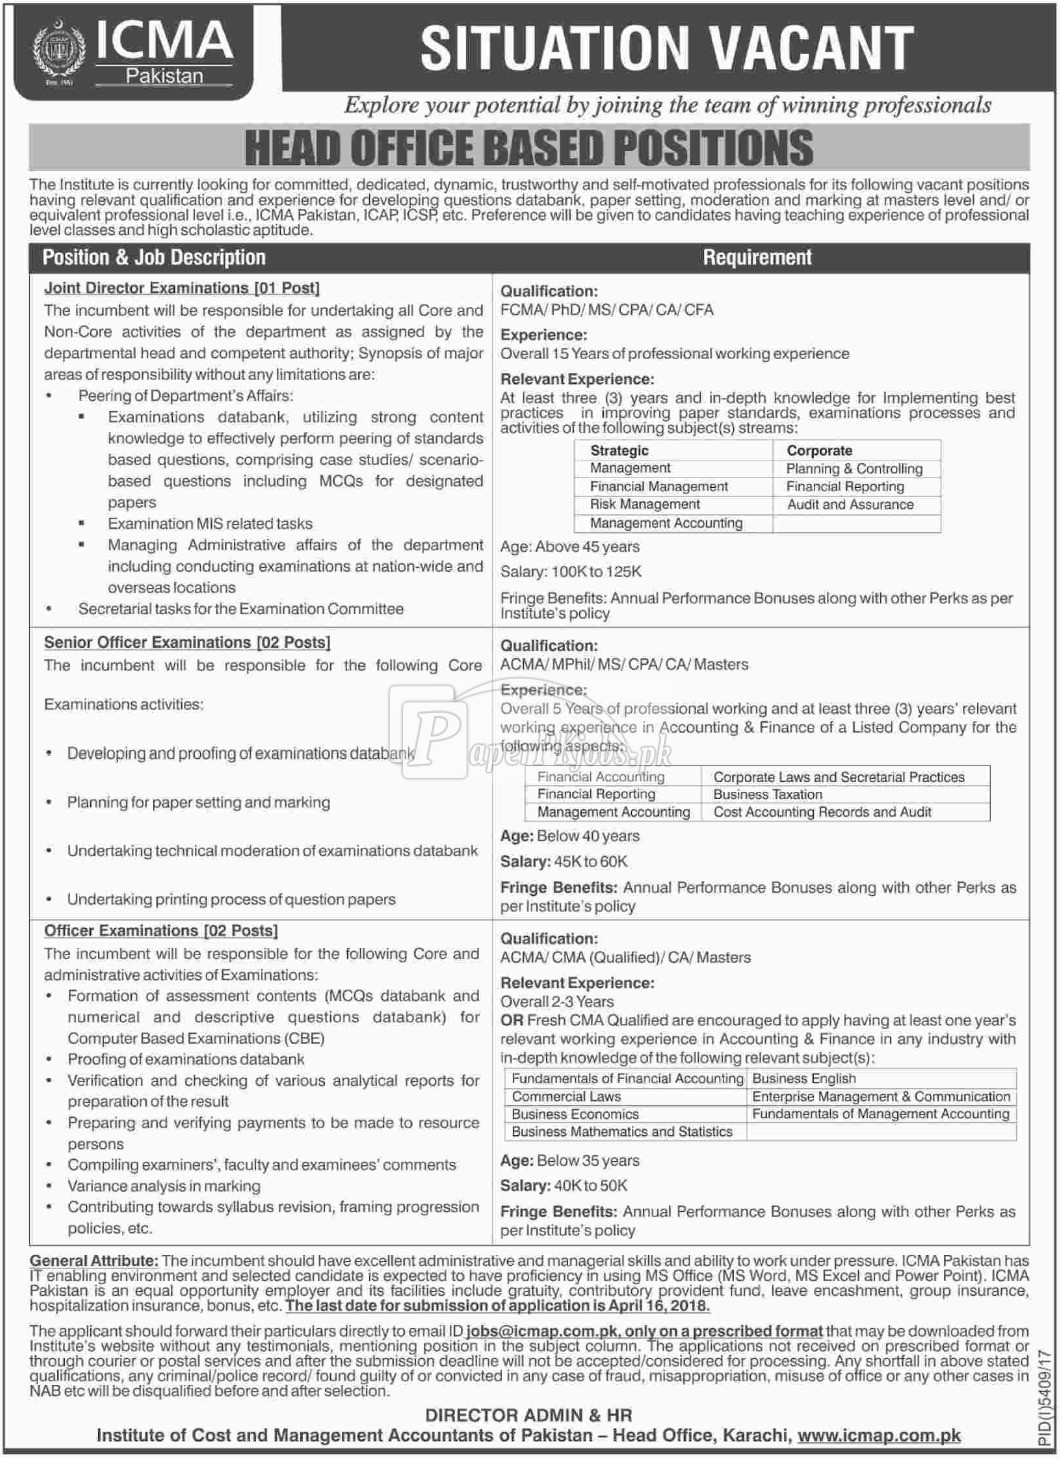 Institute of Cost & Management Accountants of Pakistan ICMAP Jobs 2018